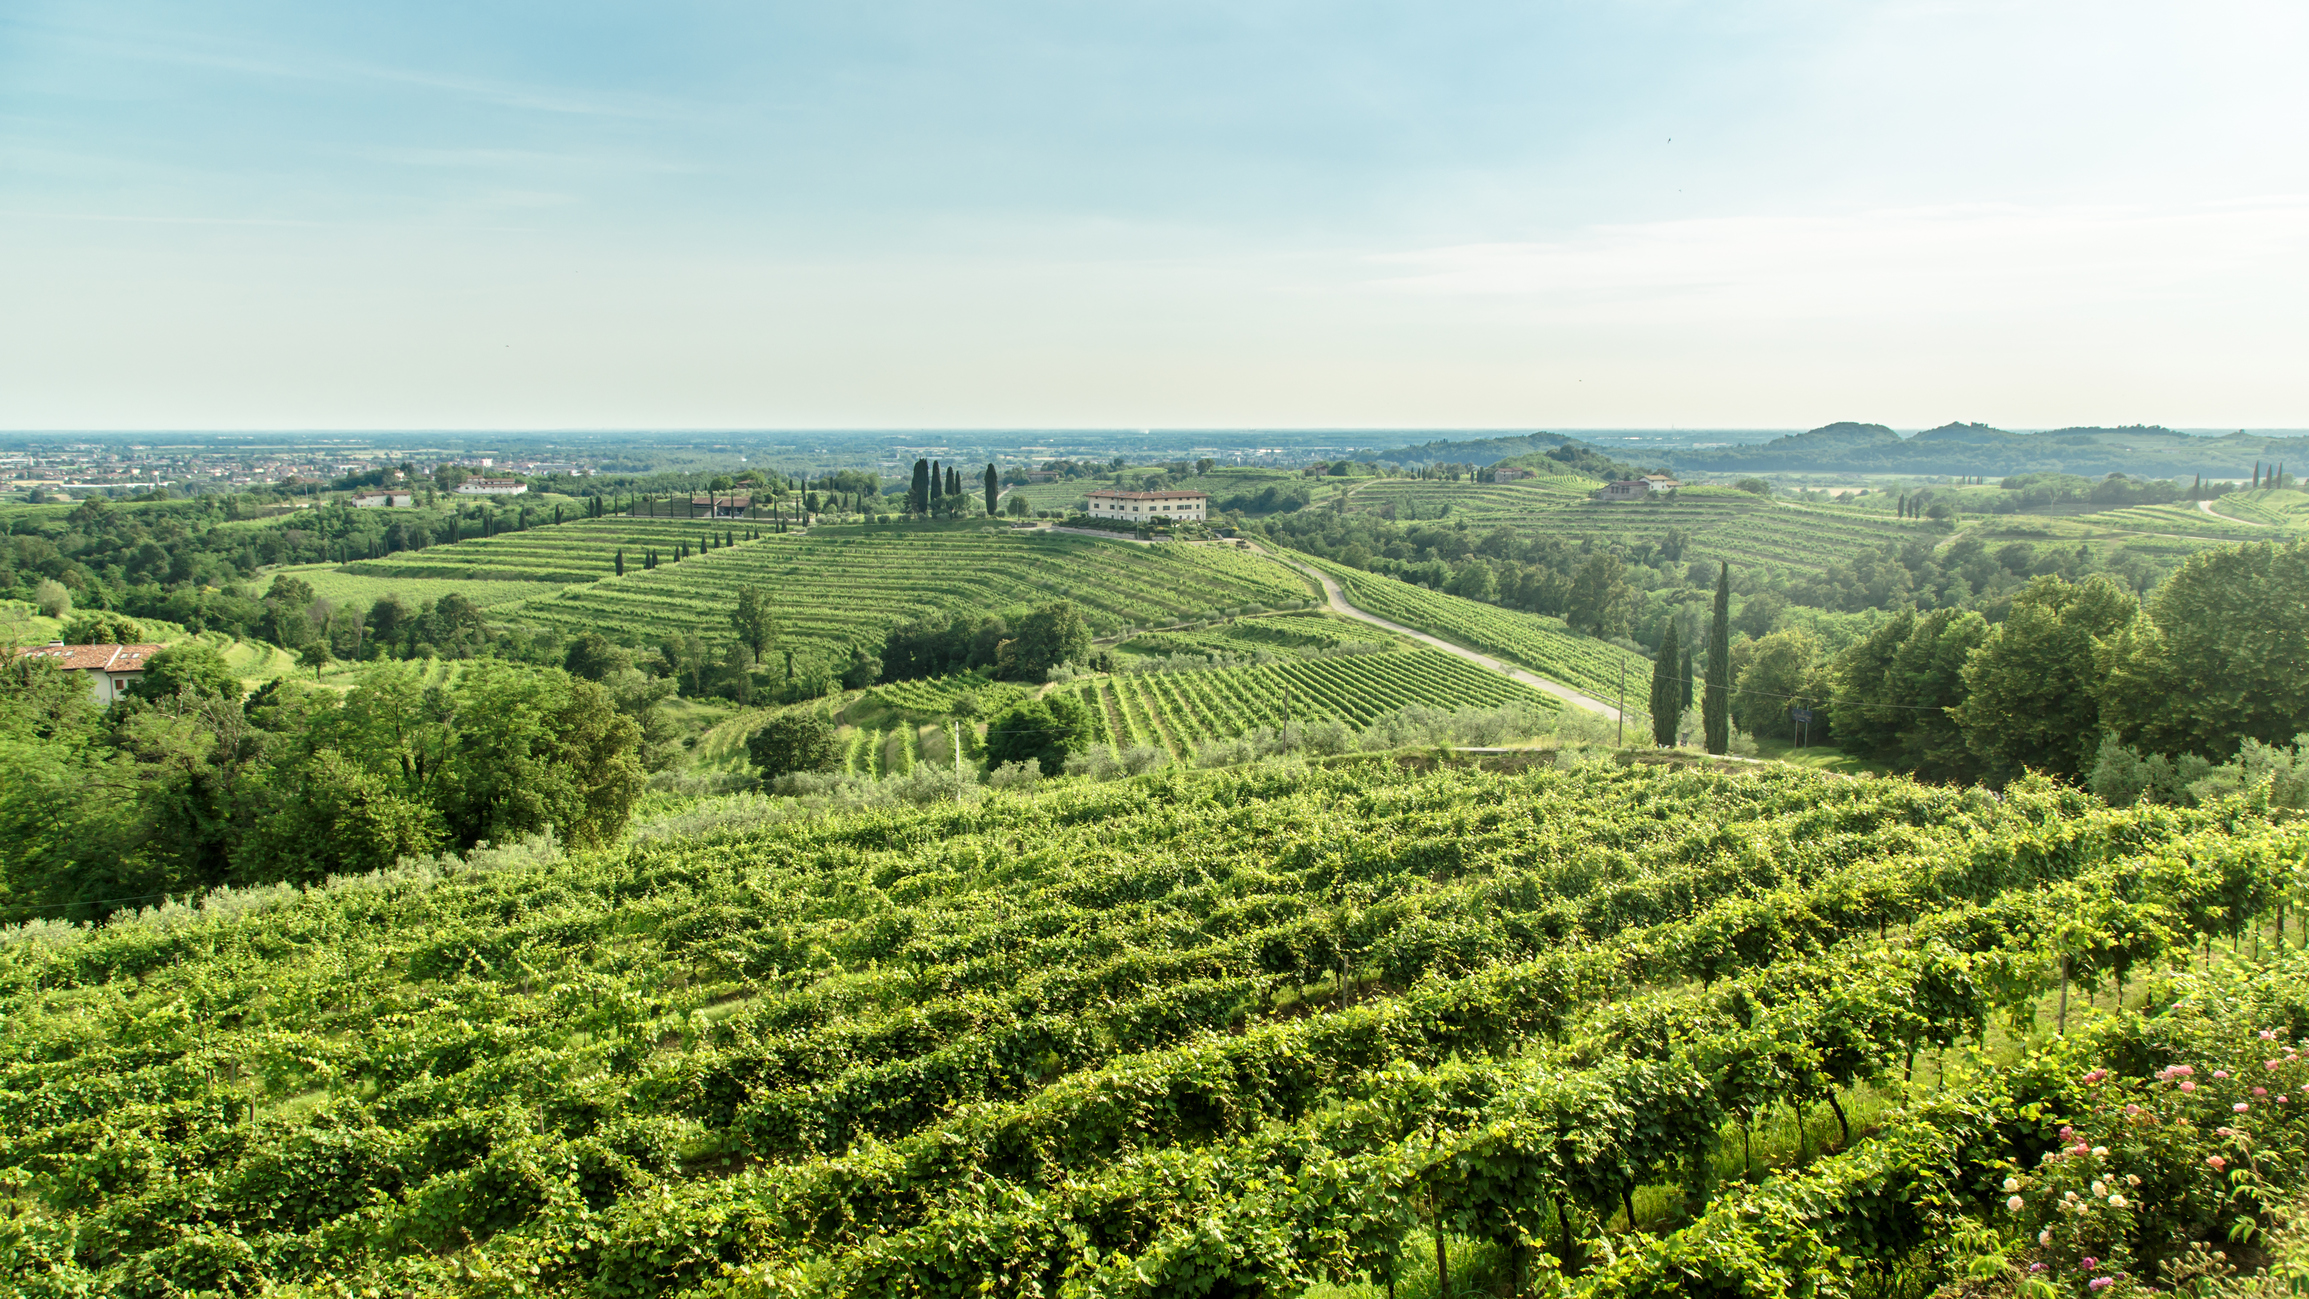 Fabulous wine and wine tasting opportunities